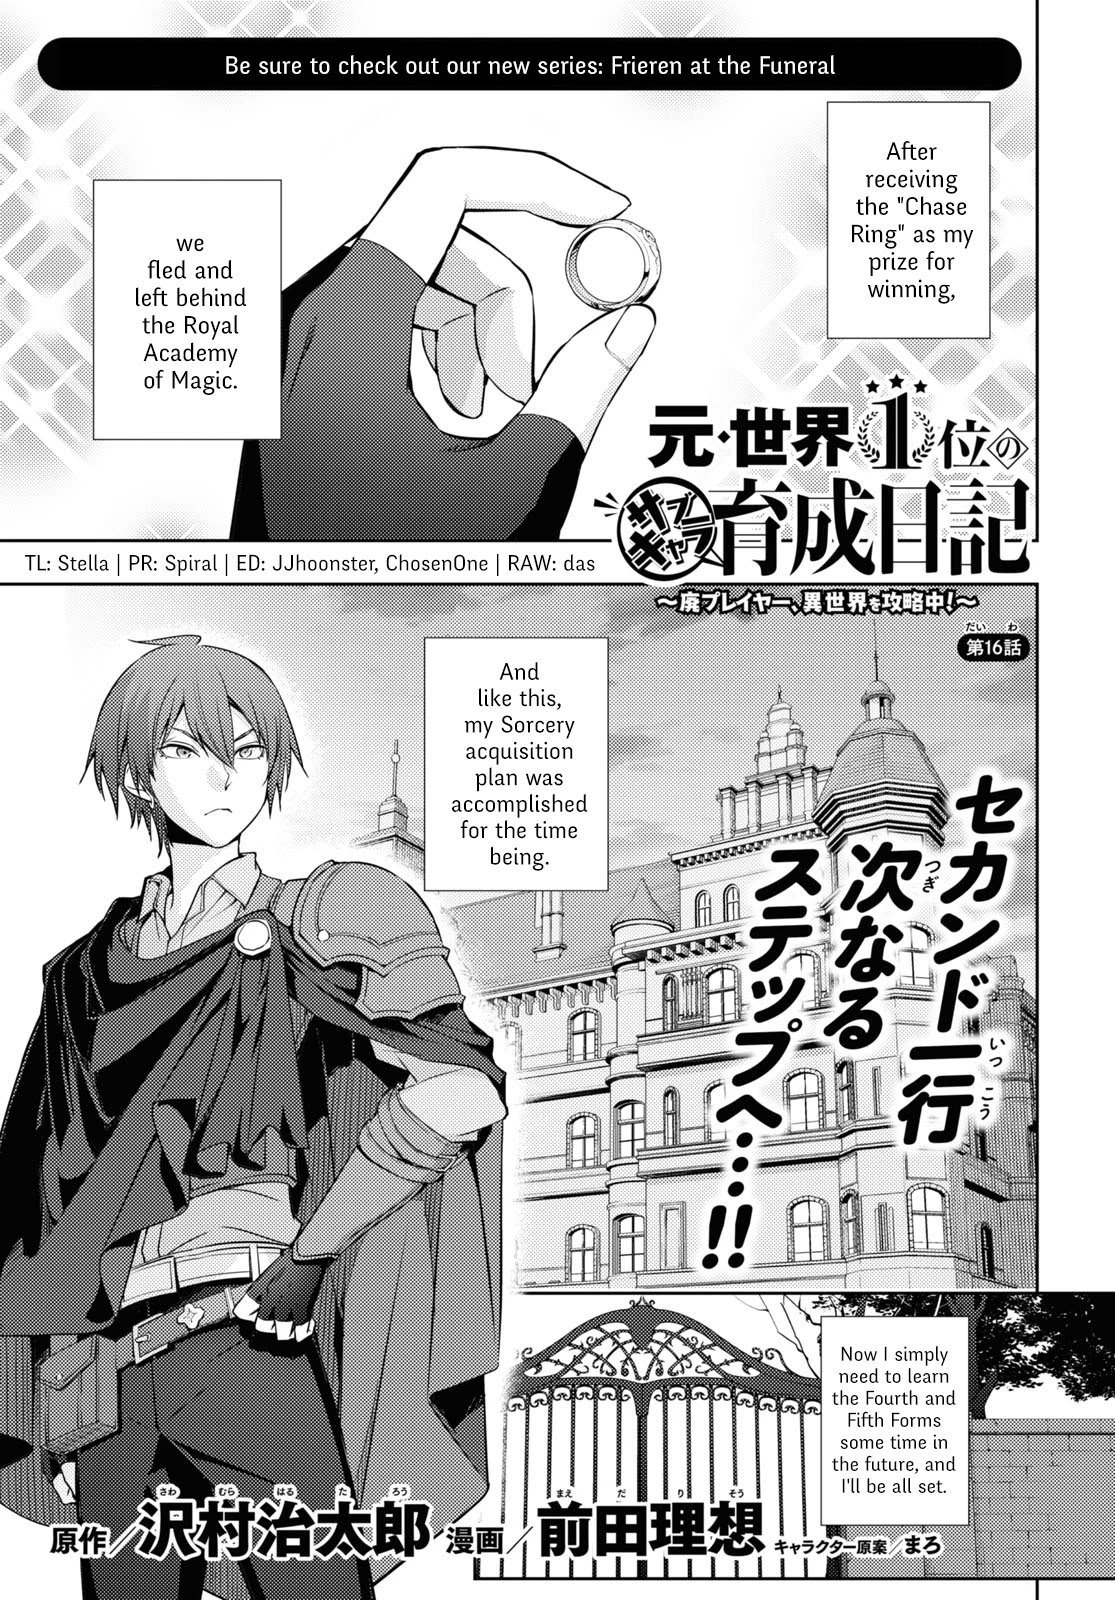 Manga The Former Top 1's Sub-Character Training Diary ~A Dedicated Player is Currently Conquering Another World!~ - Chapter 16 Page 1